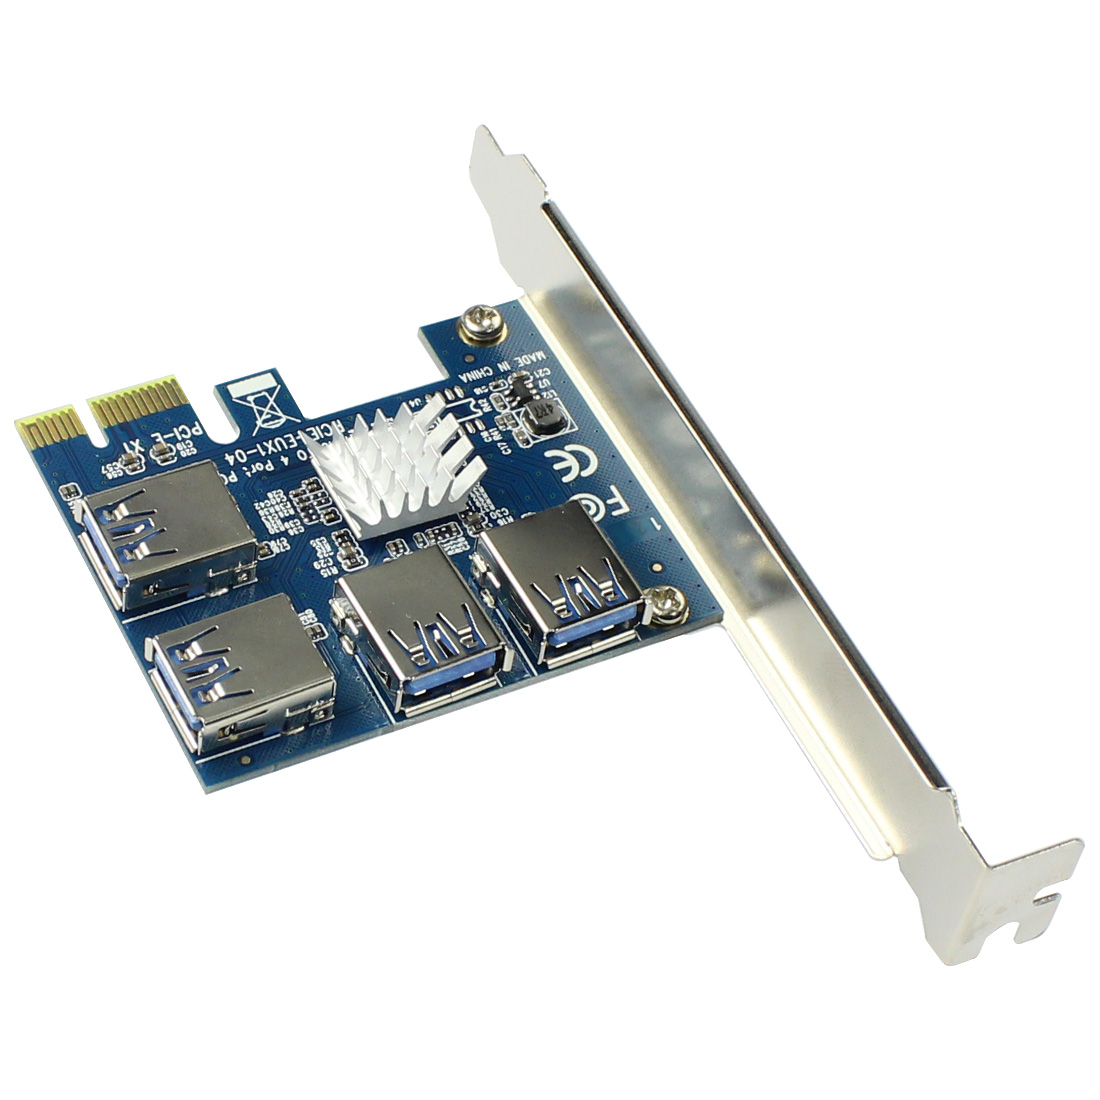 PCIE PCI-E PCI Express Riser Card 1x to 16x 1 to 4 USB 3.0 Slot Multiplier Hub Adapter For Bitcoin Mining Miner BTC Devices-0